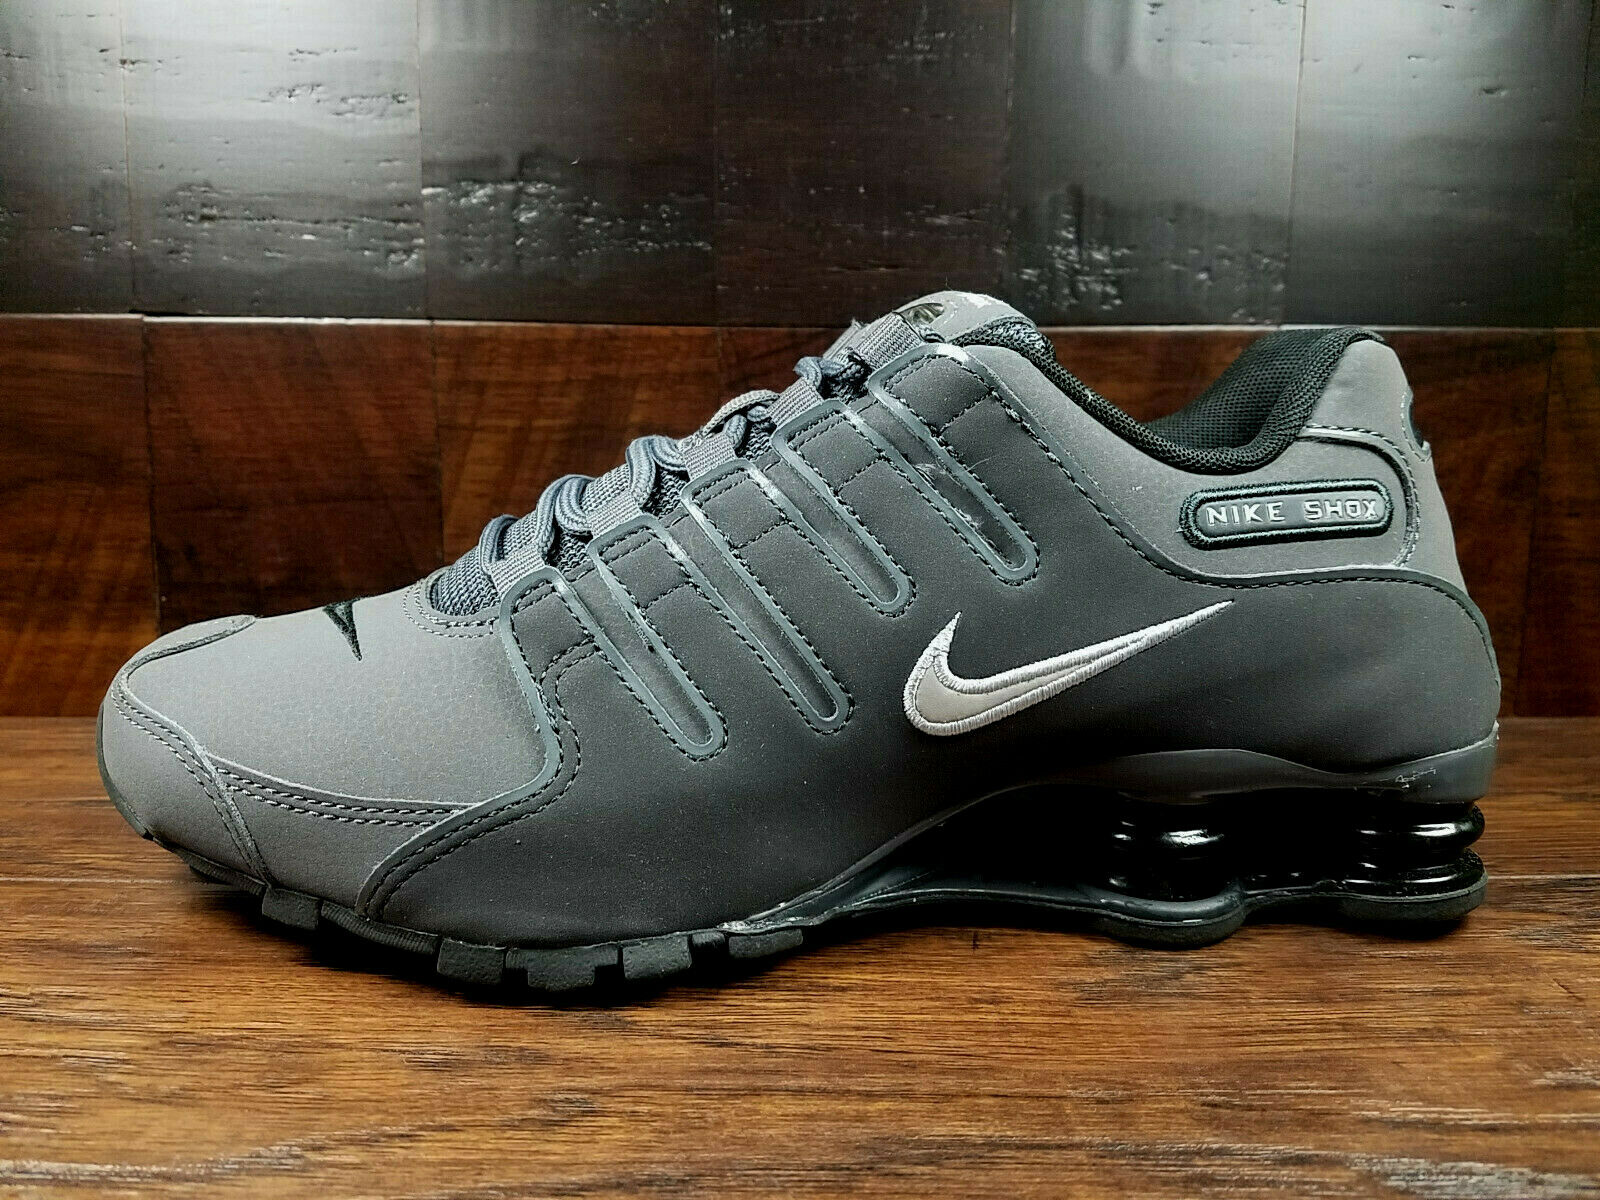 Trainer Shoes Nike Shox Nz Dark Grey Iron Anthracite Mens Shoes All Sizes Best Seller Clothes Shoes Accessories Buildersandthings Com Ng